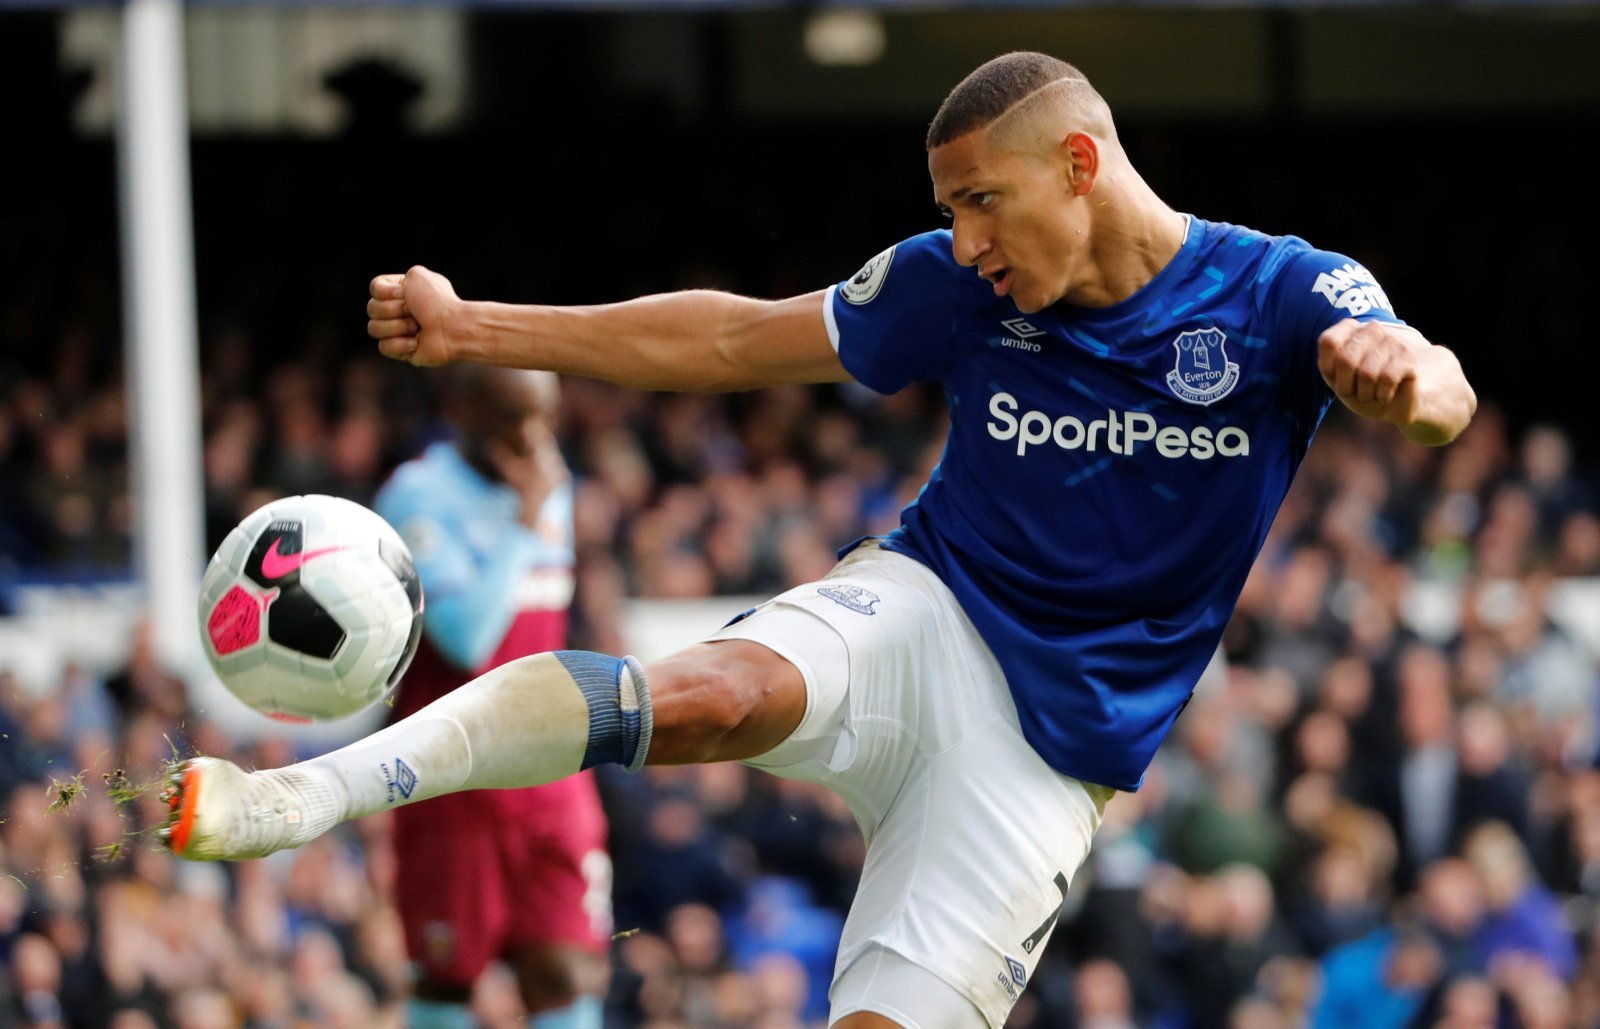 Everton: Richarlison's pasta hiccup has Toffees supporters in stitches